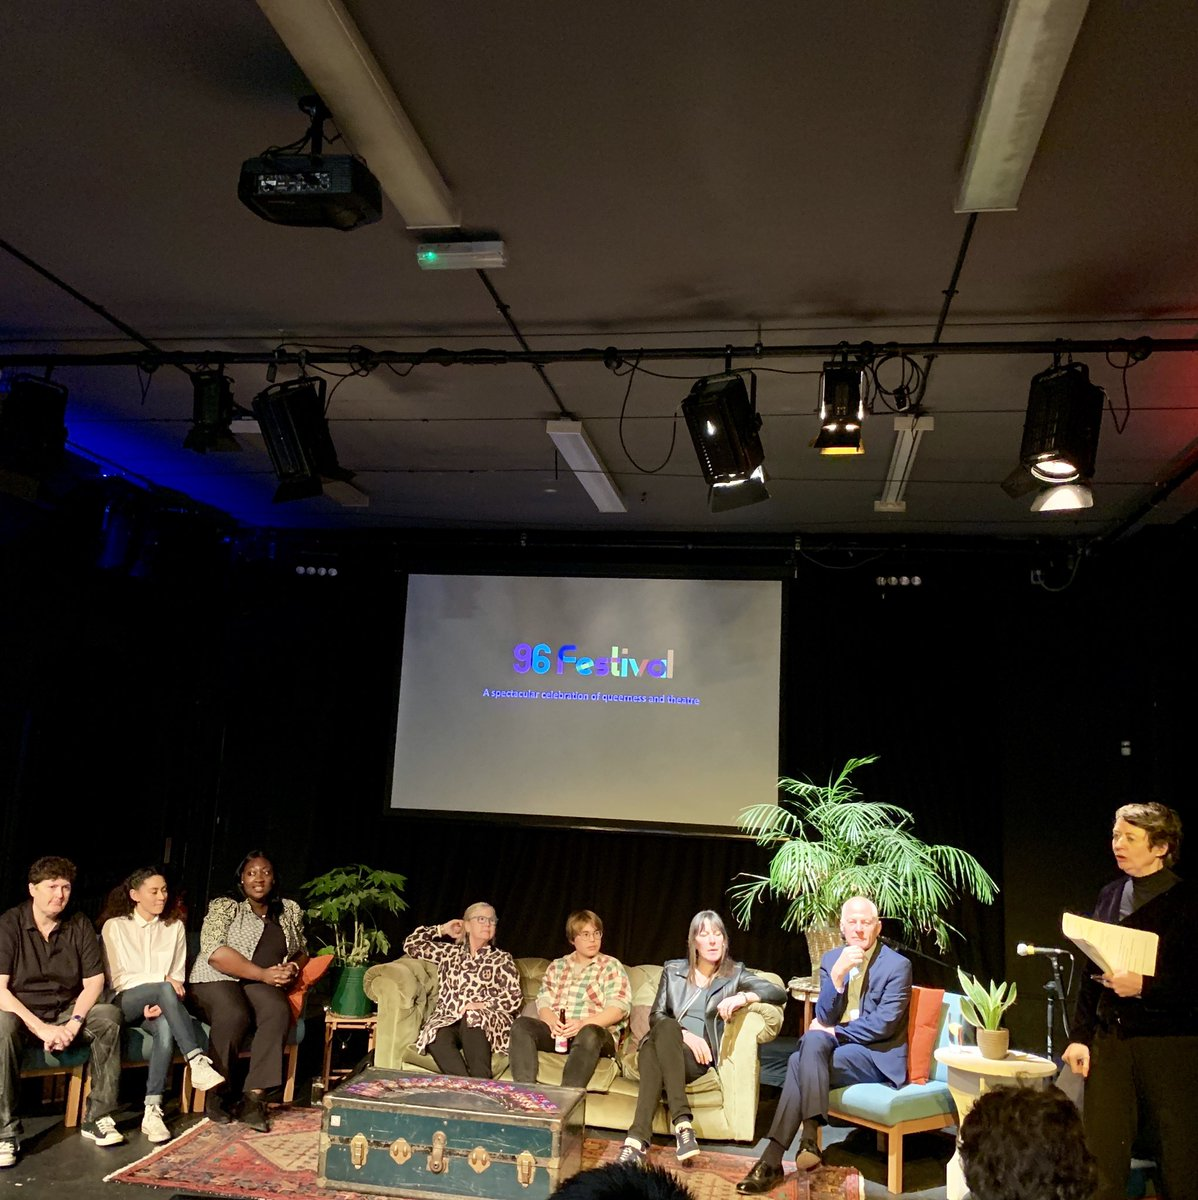 Launch #96Fest 🏳️🌈 last night @Omnibus_Theatre.   Great discussion led by @MarieMcCarthyAD with @MsLadyPhyll, @Jan_Gooding, @mcashmanCBE, @LindaRiley8, @zeus_japonicus, #CassieLeon and @rebeccaroot1969 🥳  More here - https://www.omnibus-clapham.org 😍